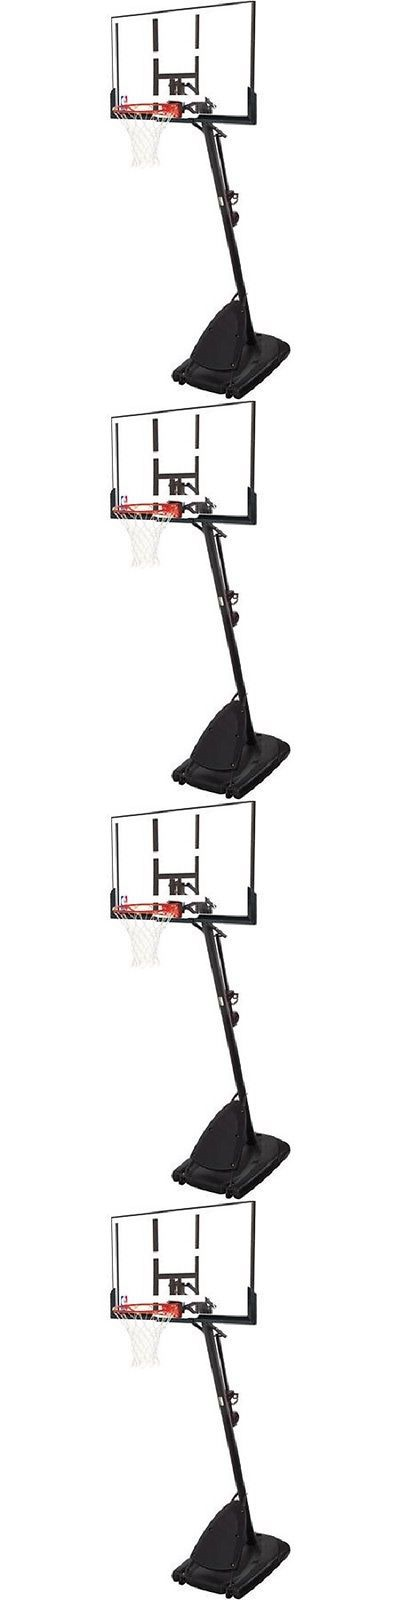 Backboard Systems 21196: Adjustable 54Spalding Hoop Portable Basketball System Backboard Court Net Pole -> BUY IT NOW ONLY: $499.99 on eBay!